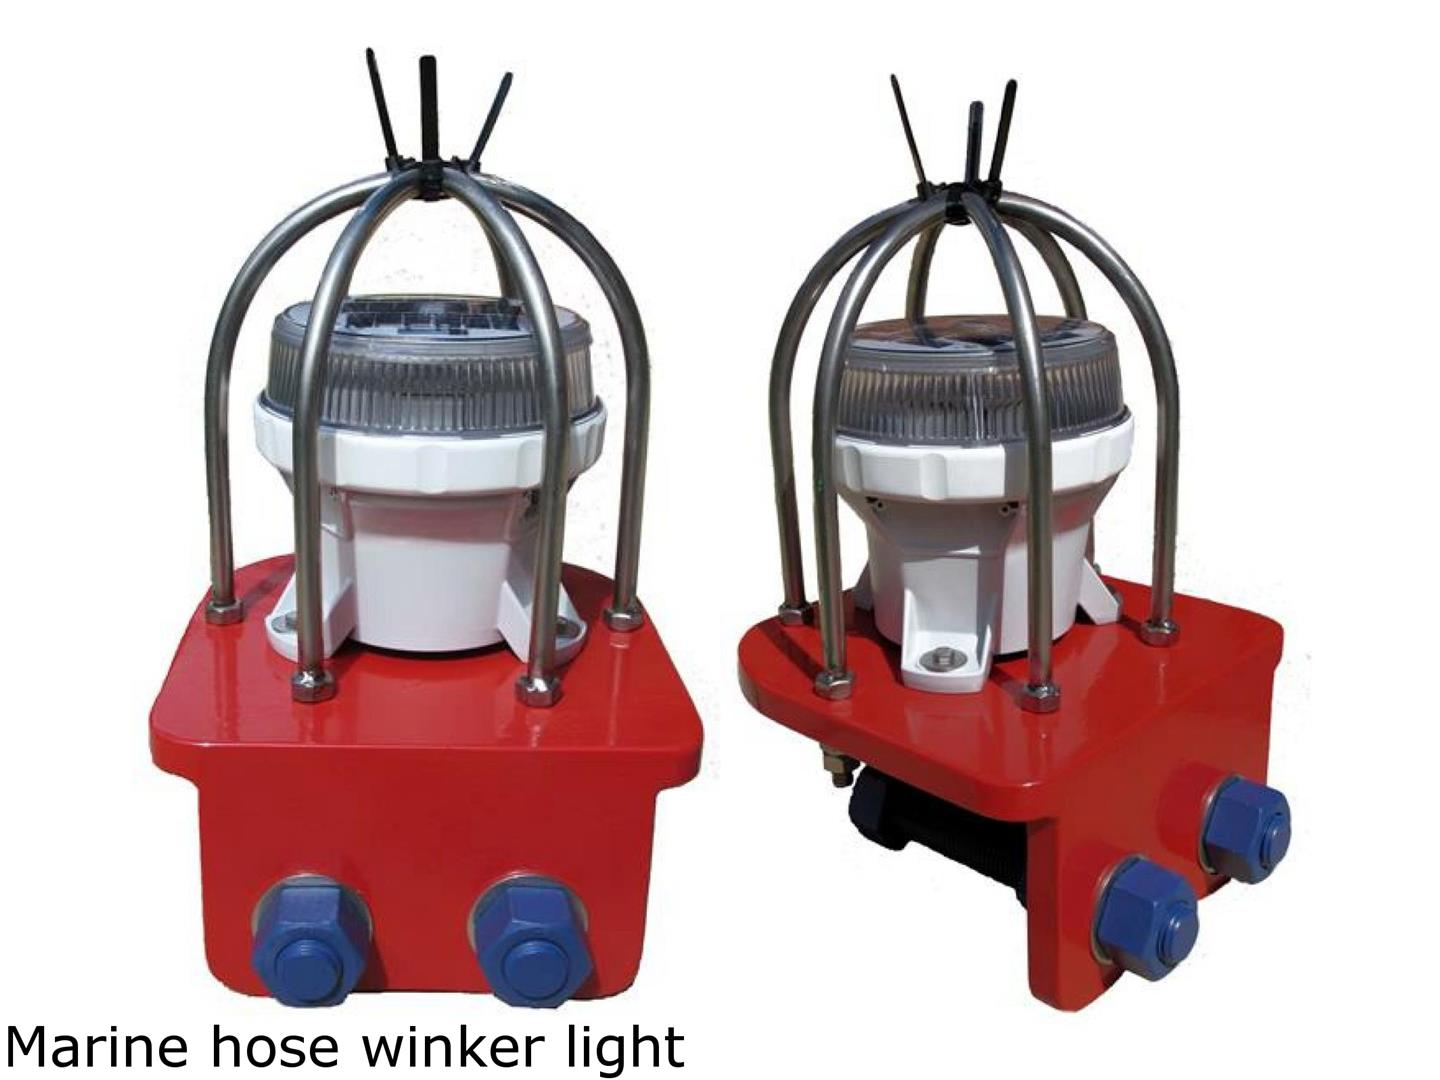 Marine hose winker lights